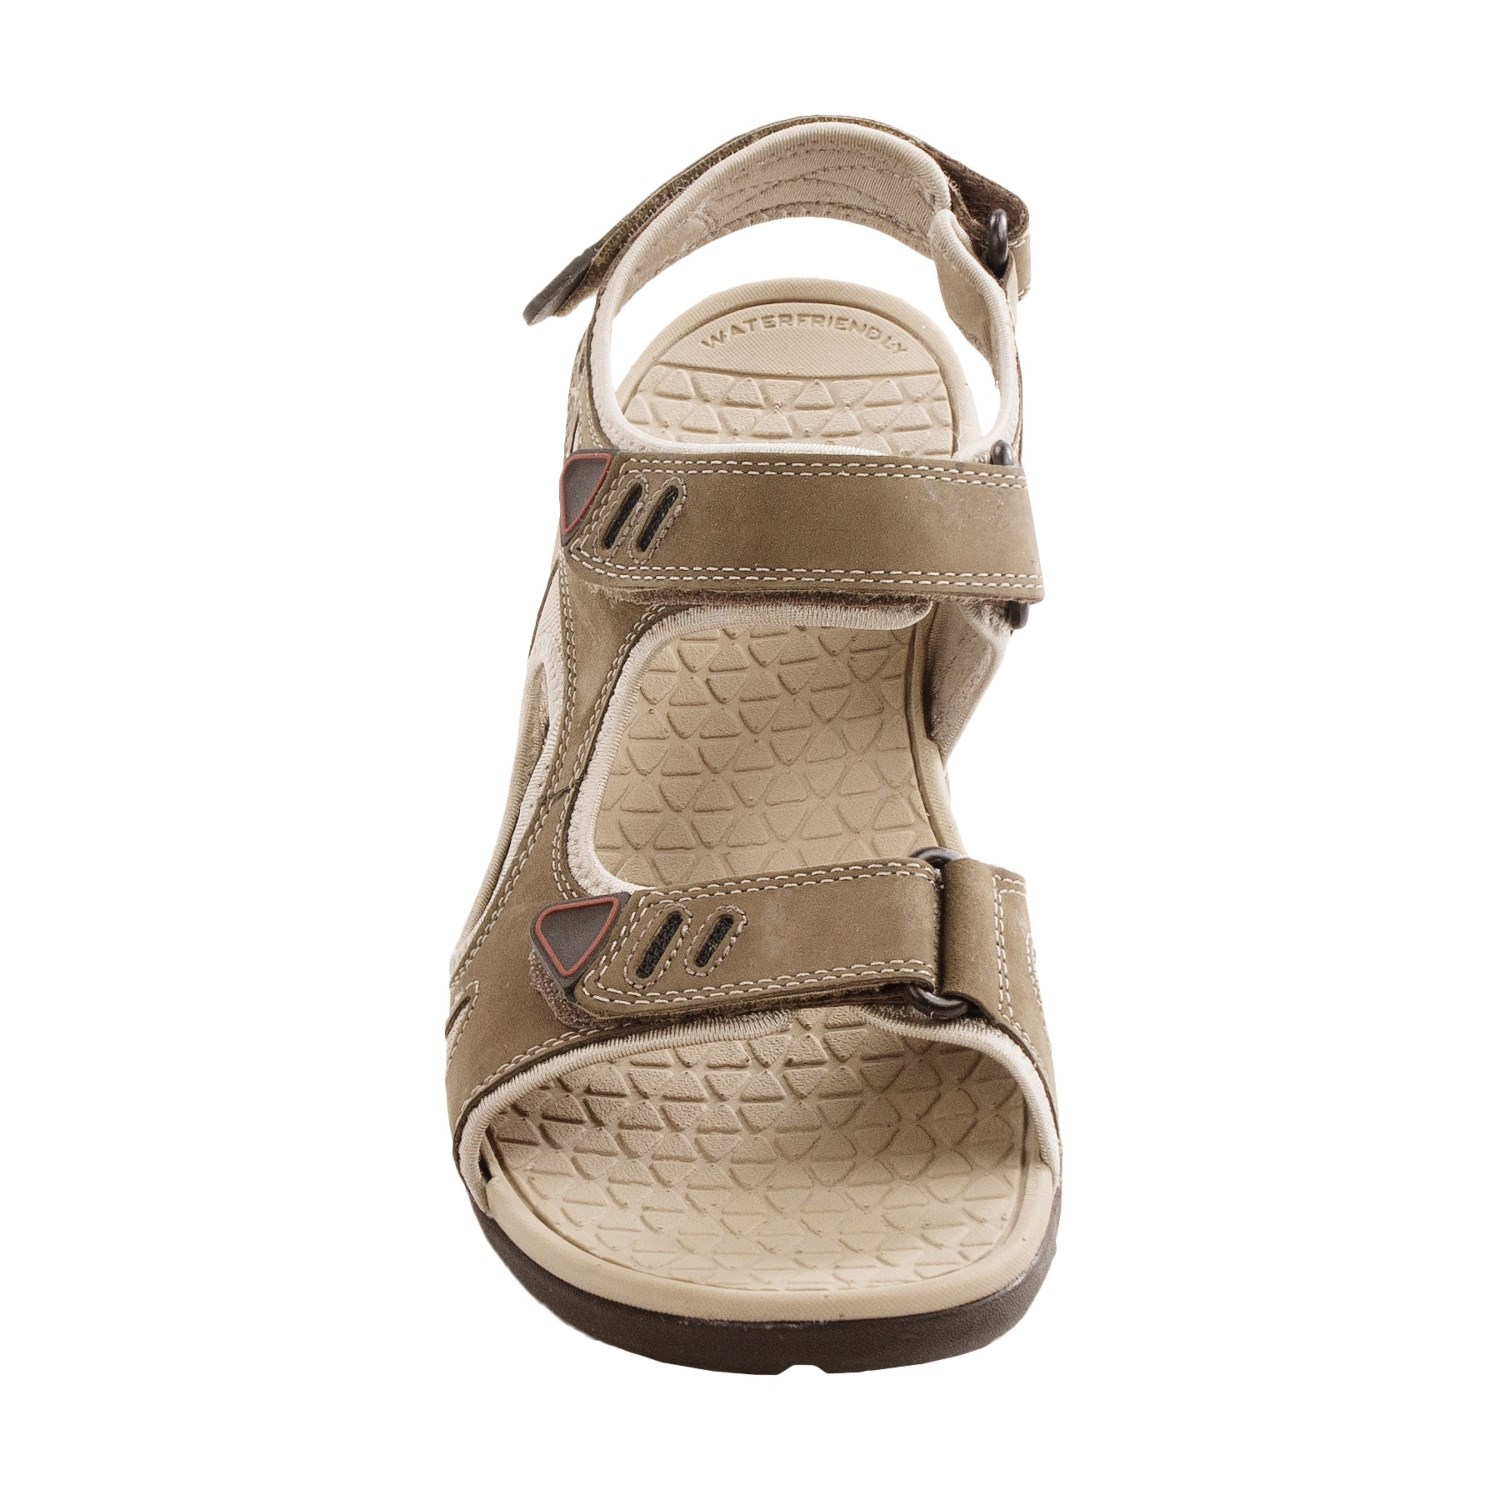 Creative Clarks Mainline Surf Savvy Coral Leather Womens Sandals U2013 Aanewshoes